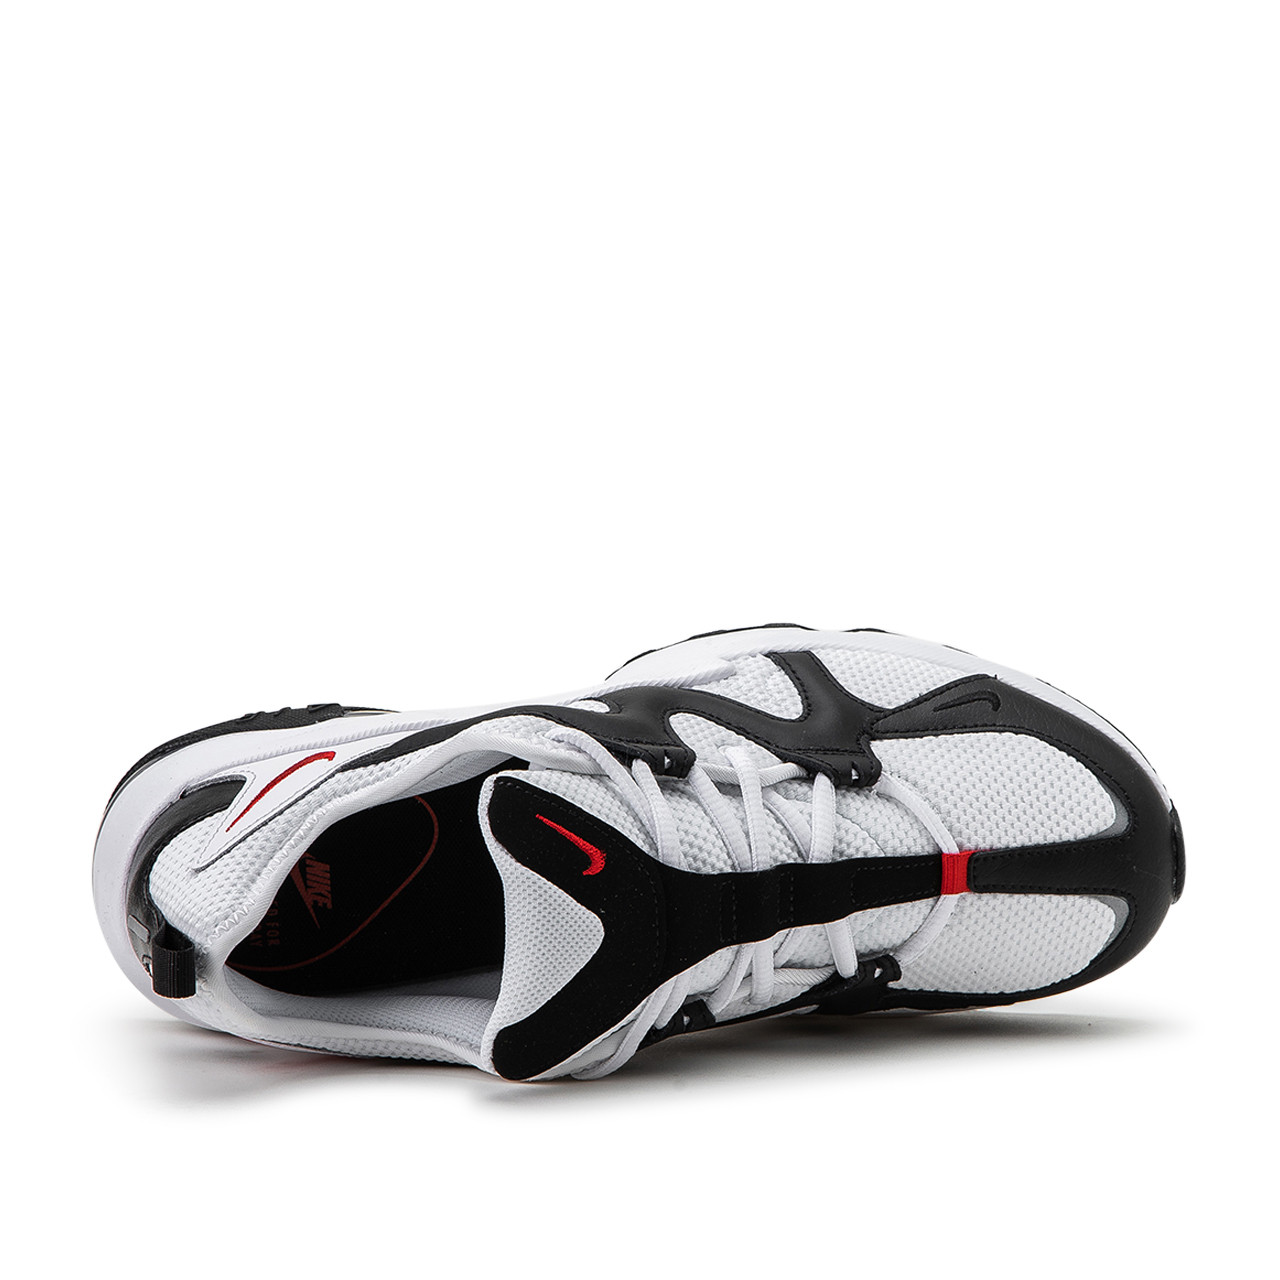 NIKE AIR MAX GRAVITON white